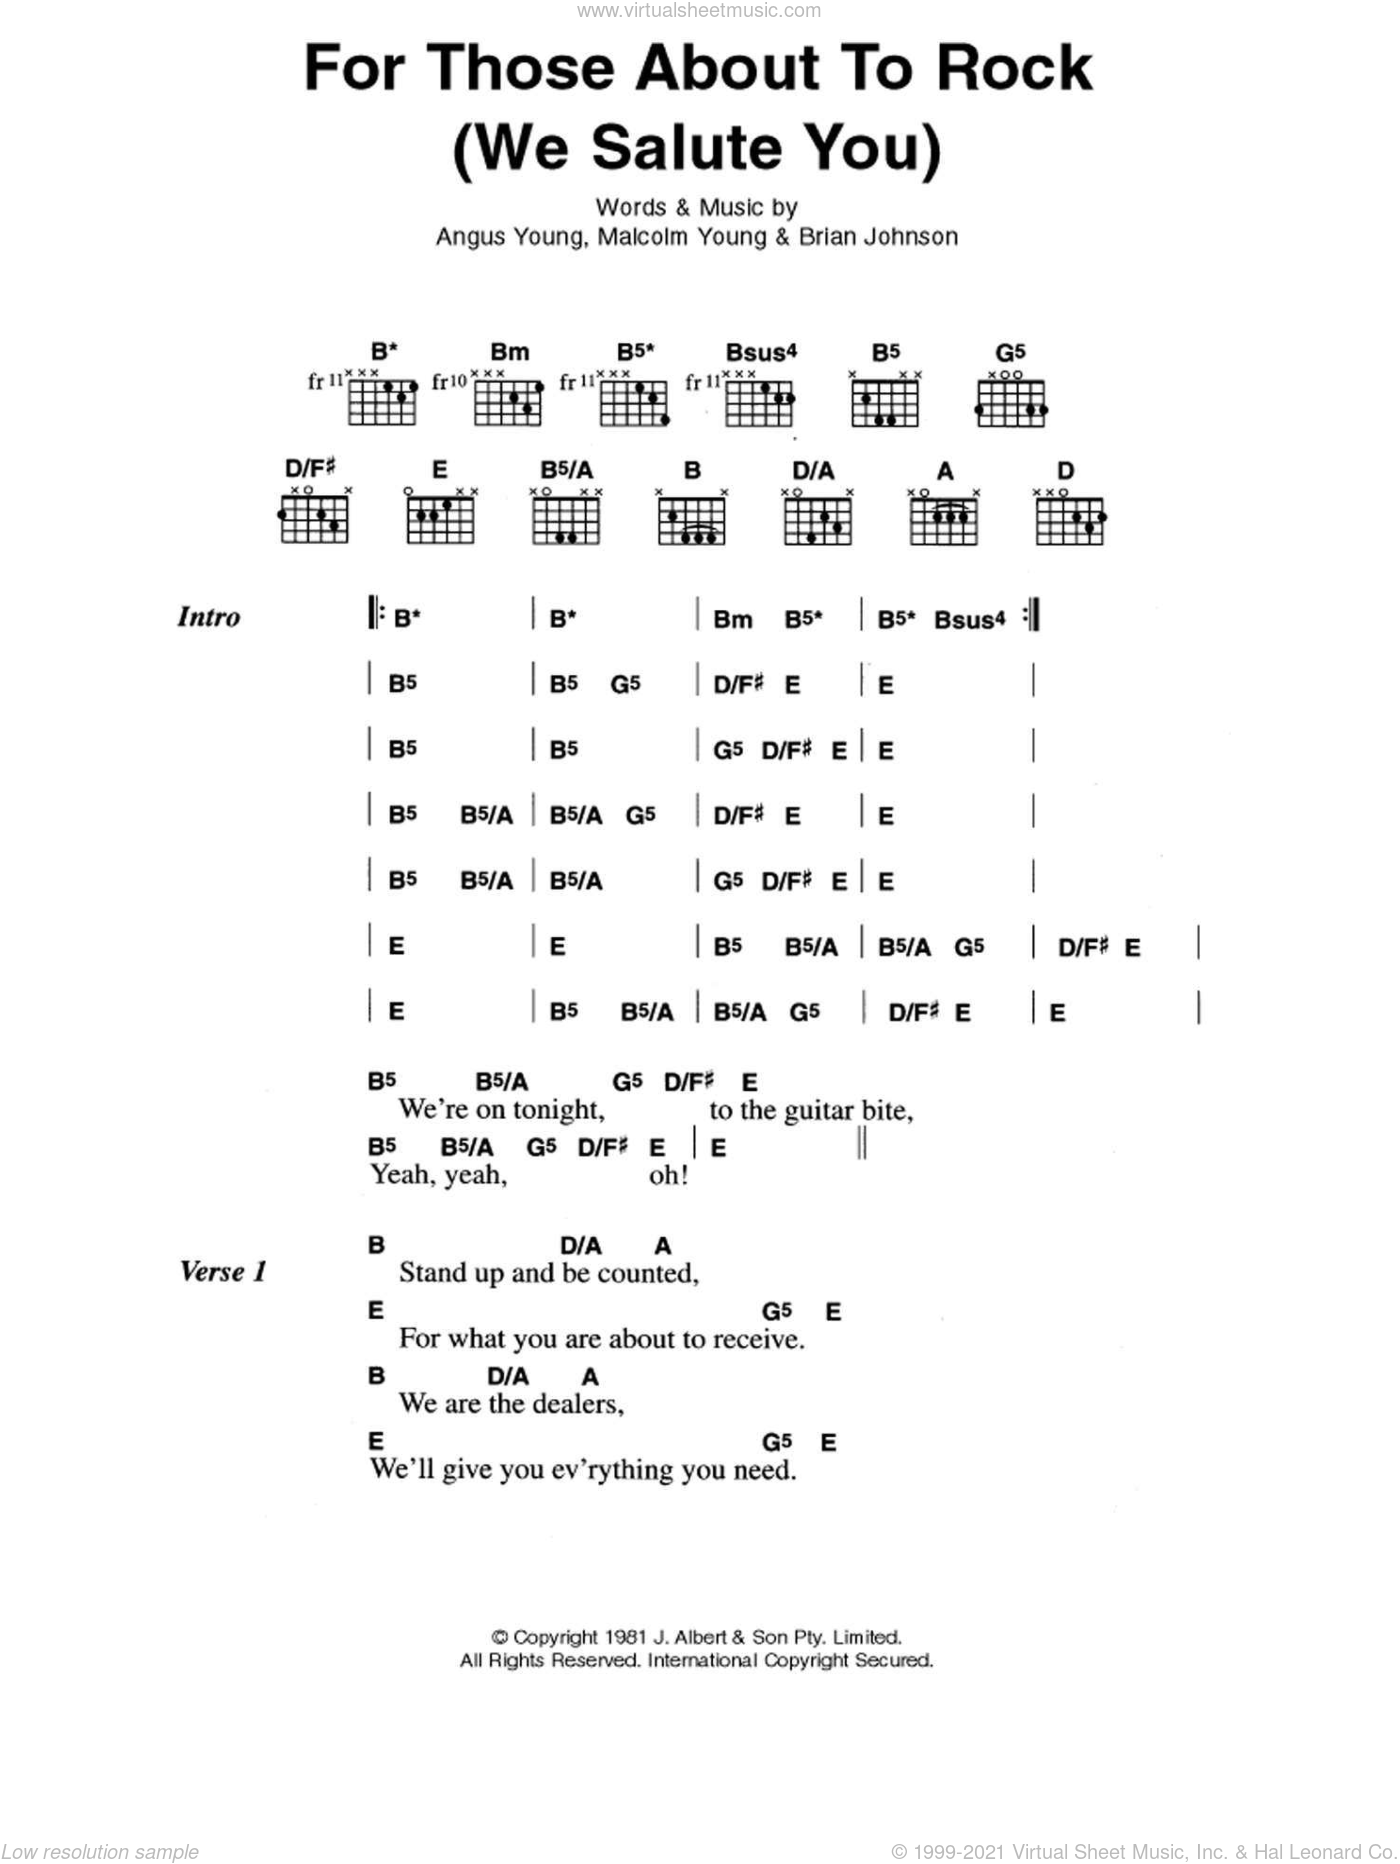 For Those About To Rock (We Salute You) sheet music for guitar (chords) by Malcolm Young, AC/DC and Angus Young. Score Image Preview.